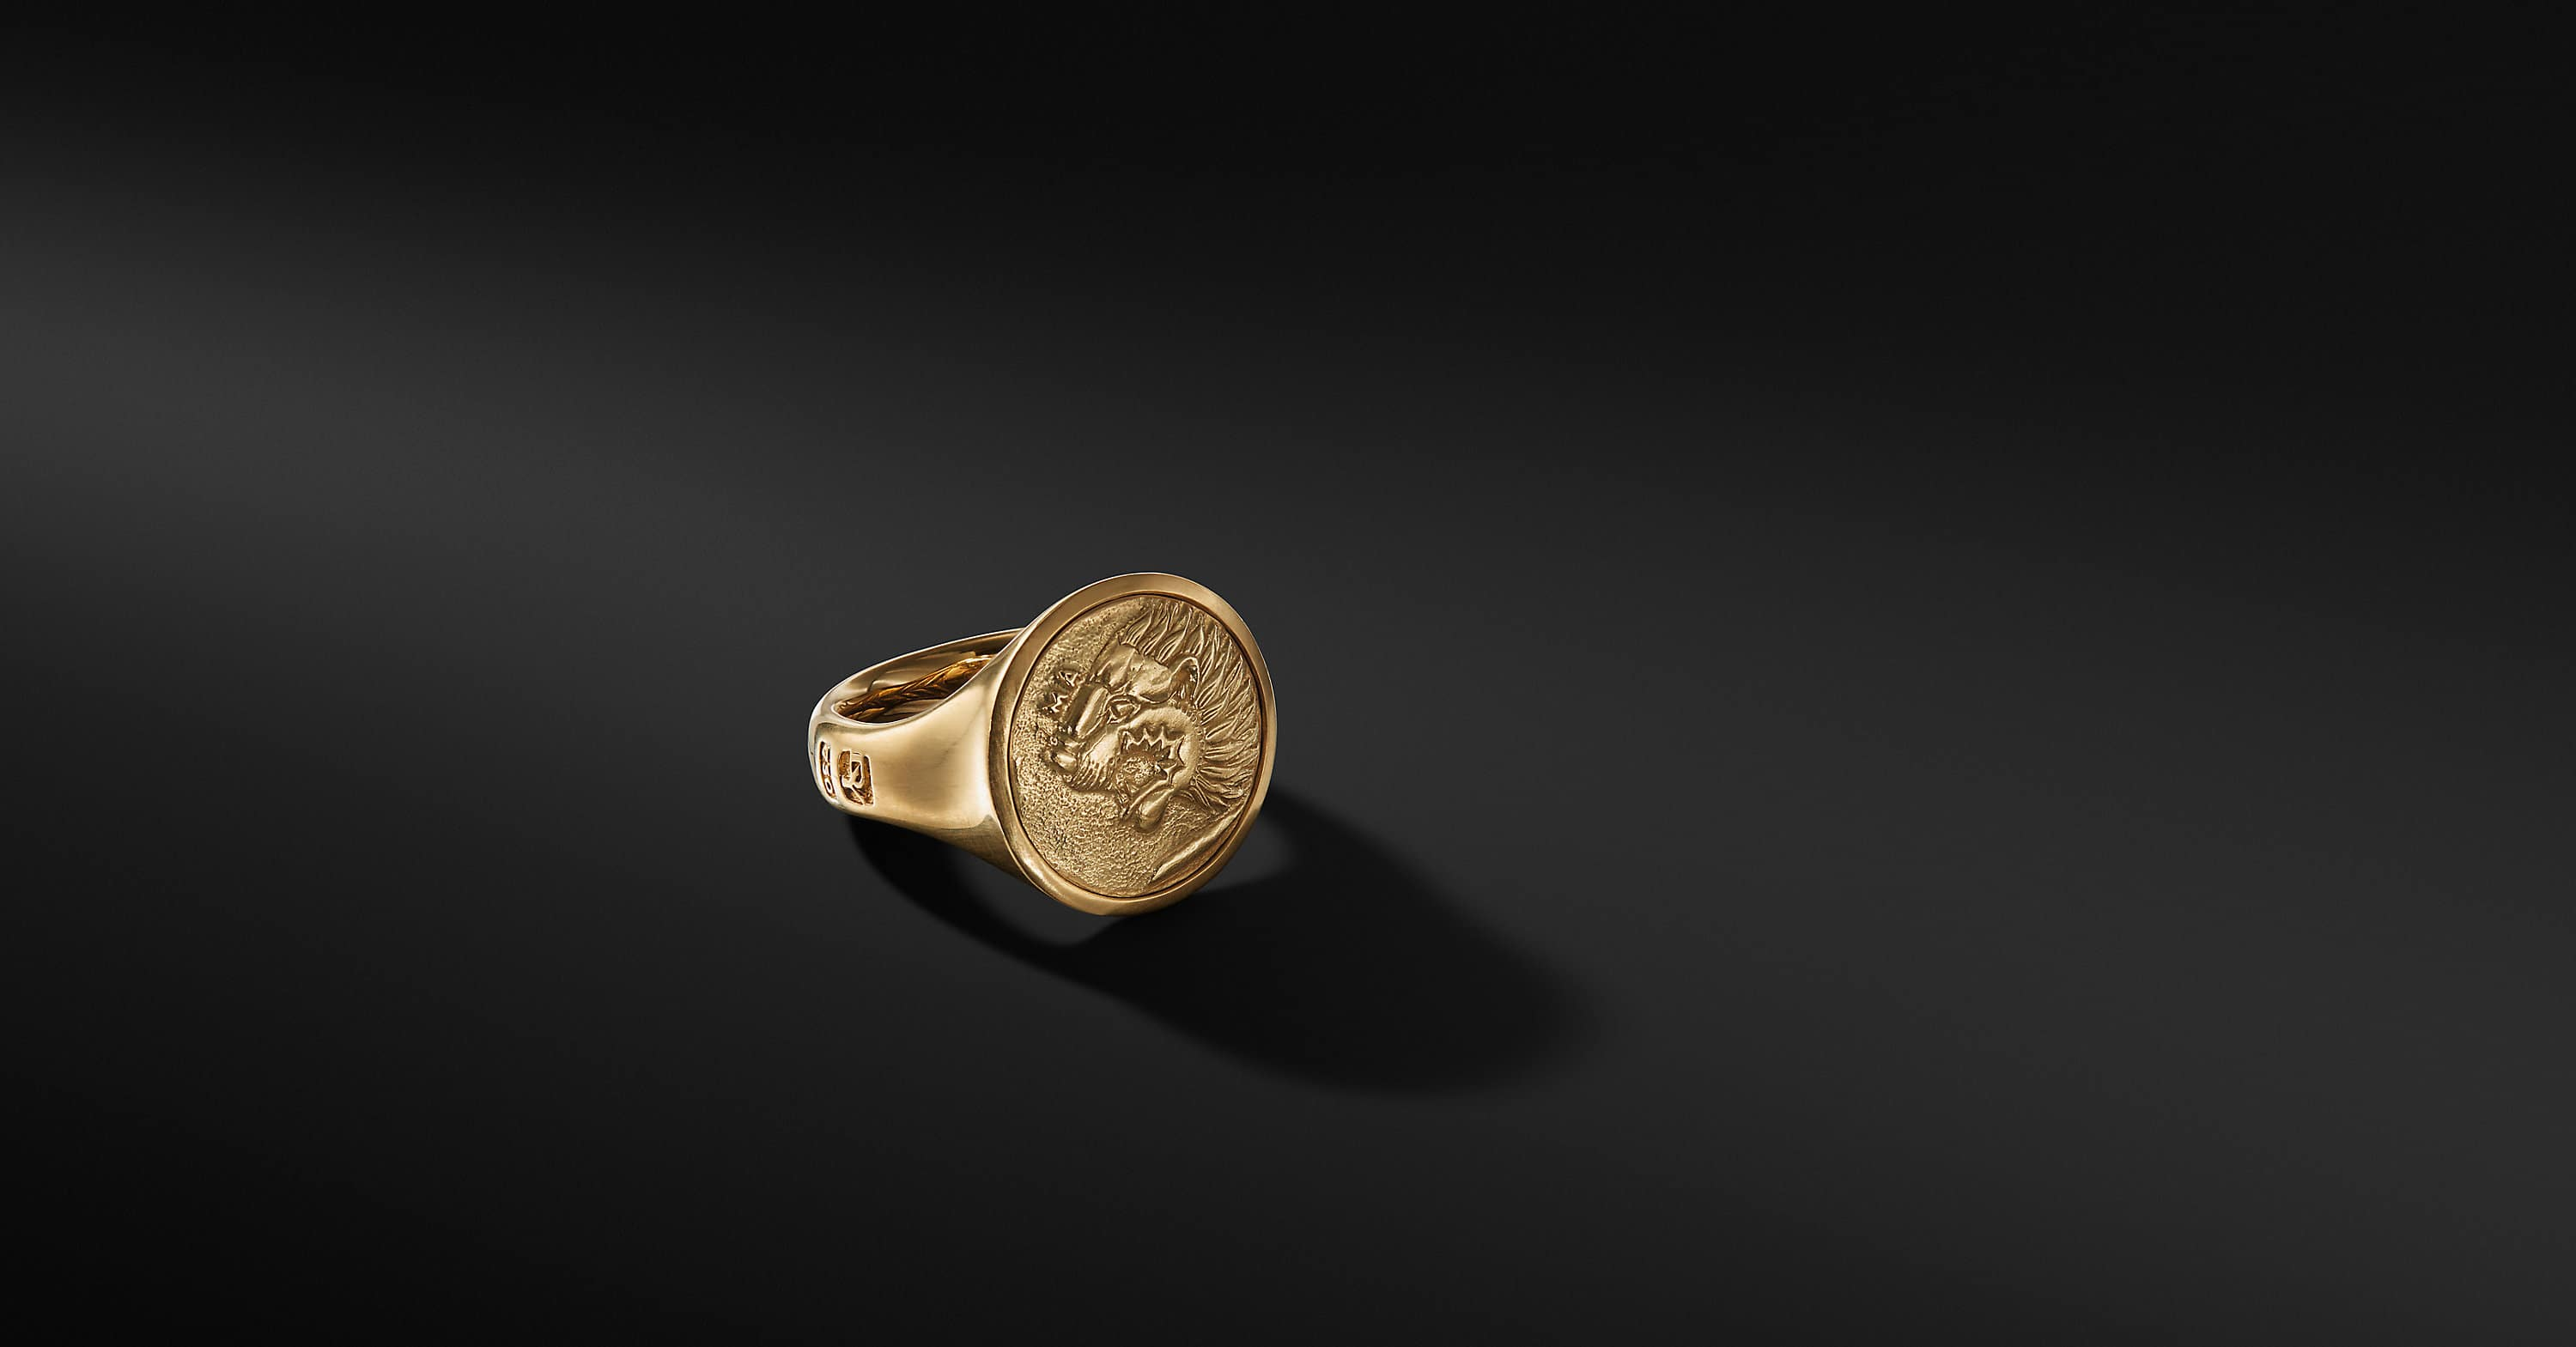 Petrvs Lion Signet Ring in 18K Gold